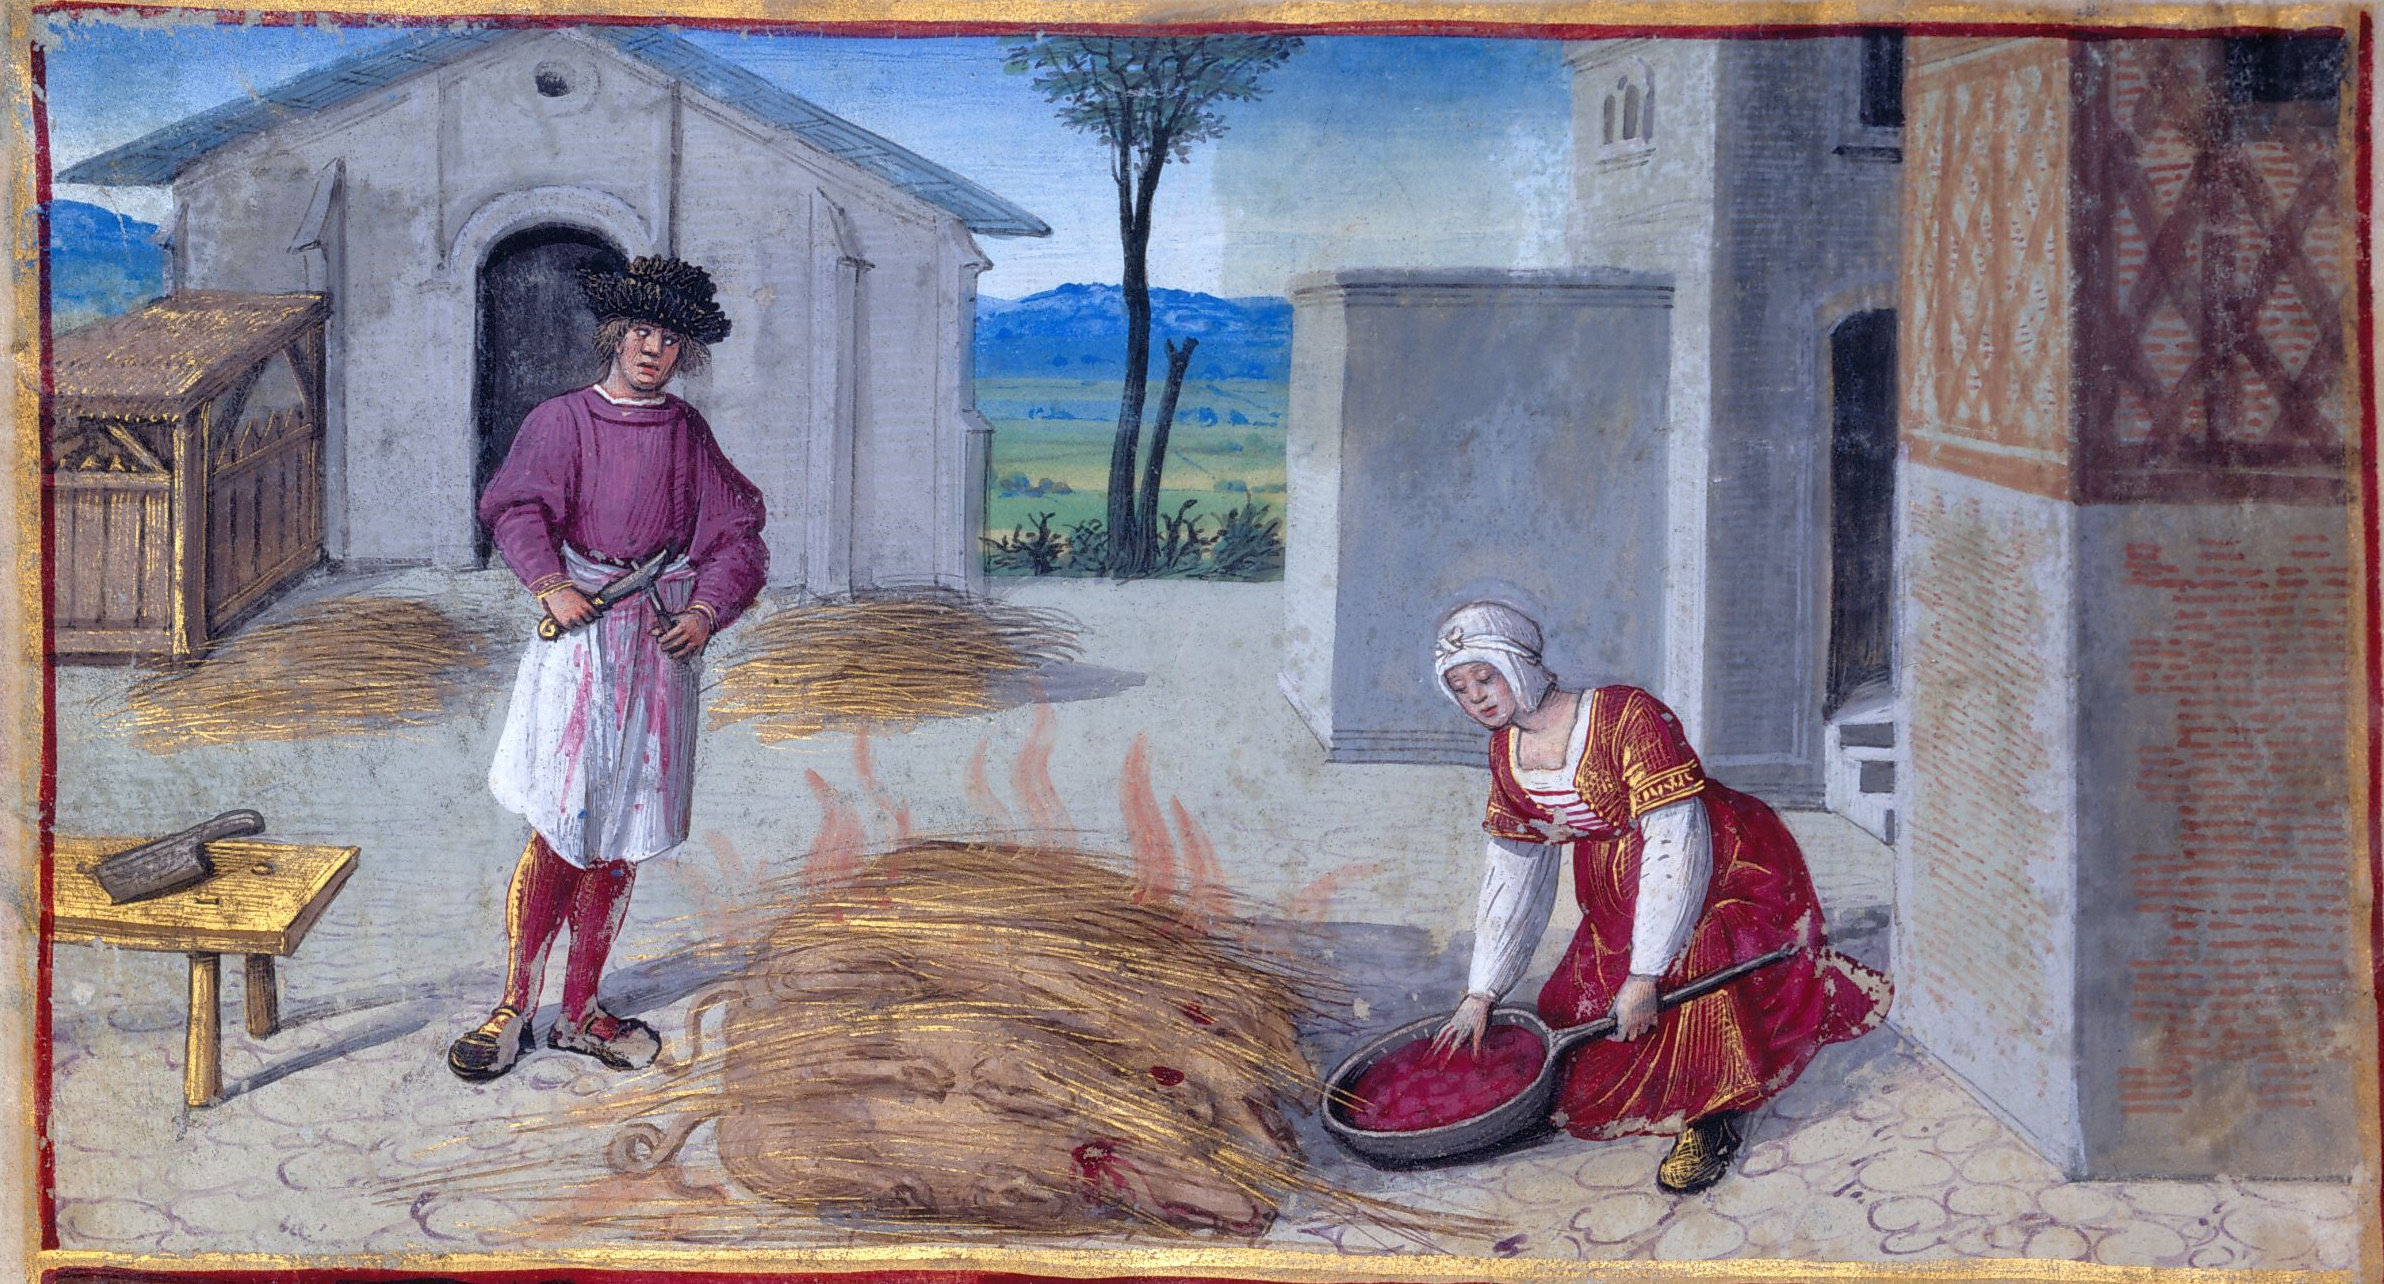 1500 - Book of Hours by Jean Poyer, known as The Hours of Henry VIII - December: Roasting Slaughtered Pigs